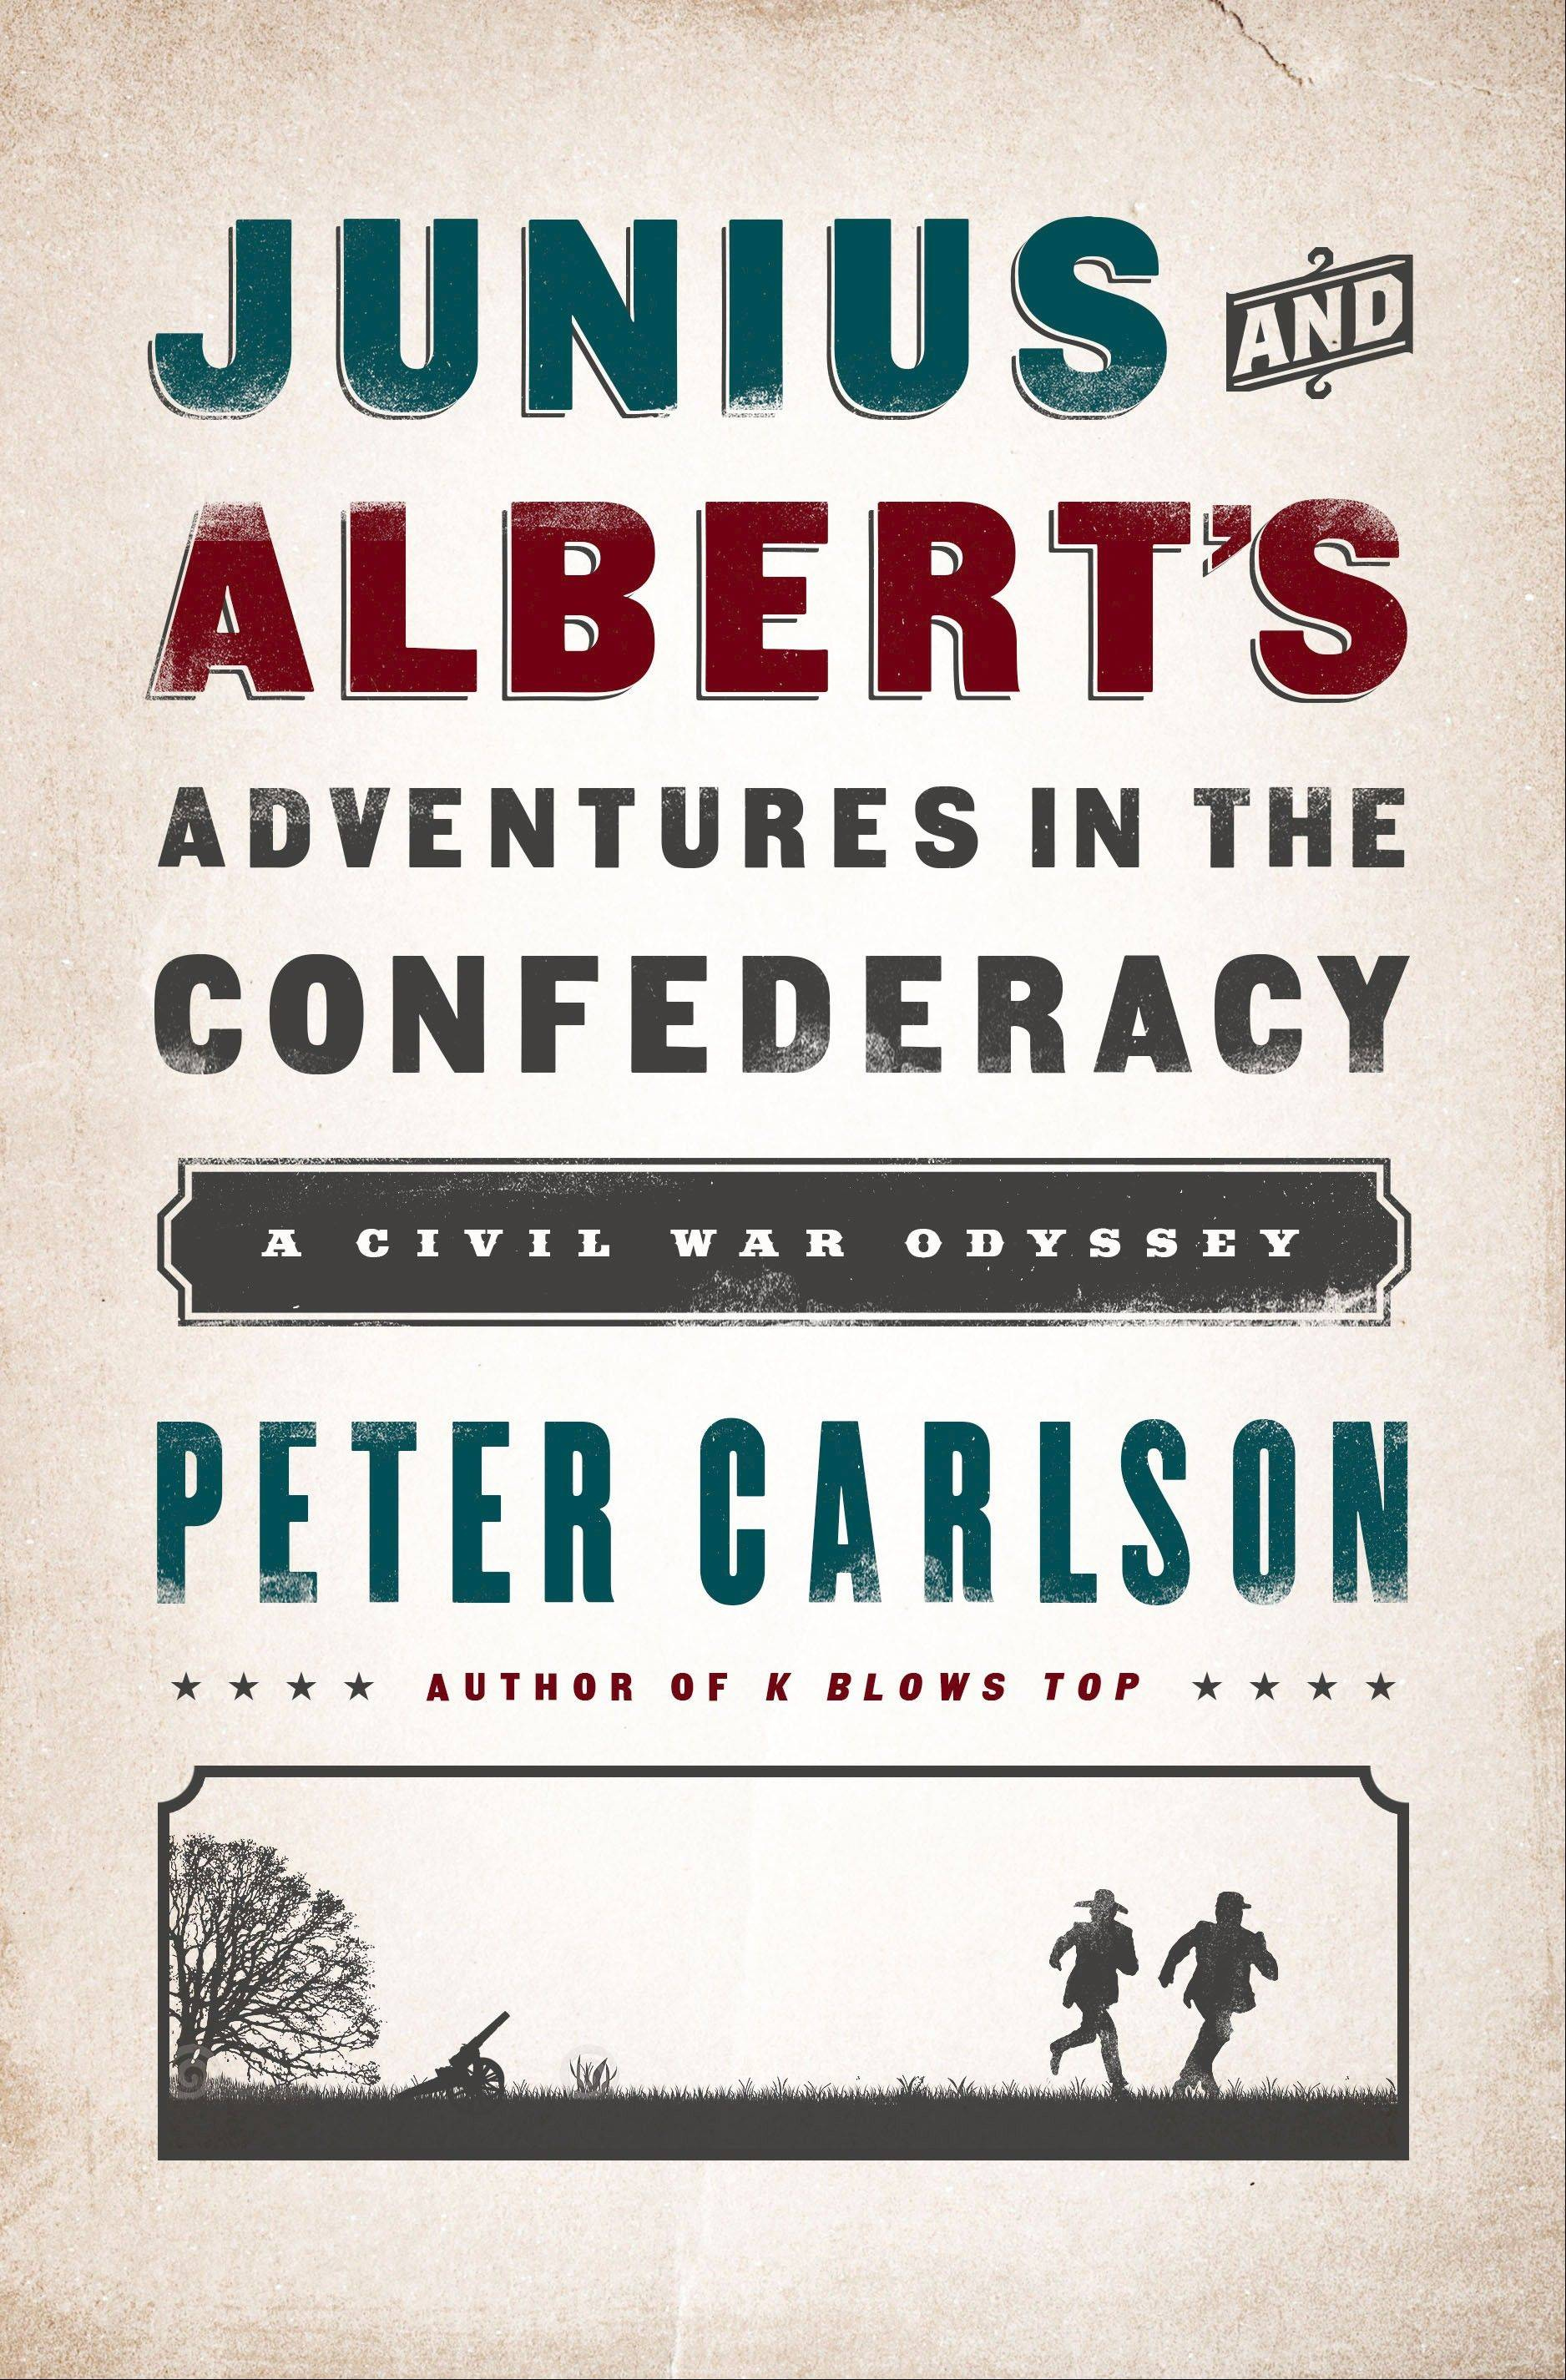 """Junius and Albert's Adventures in the Confederacy"" by Peter Carlson."